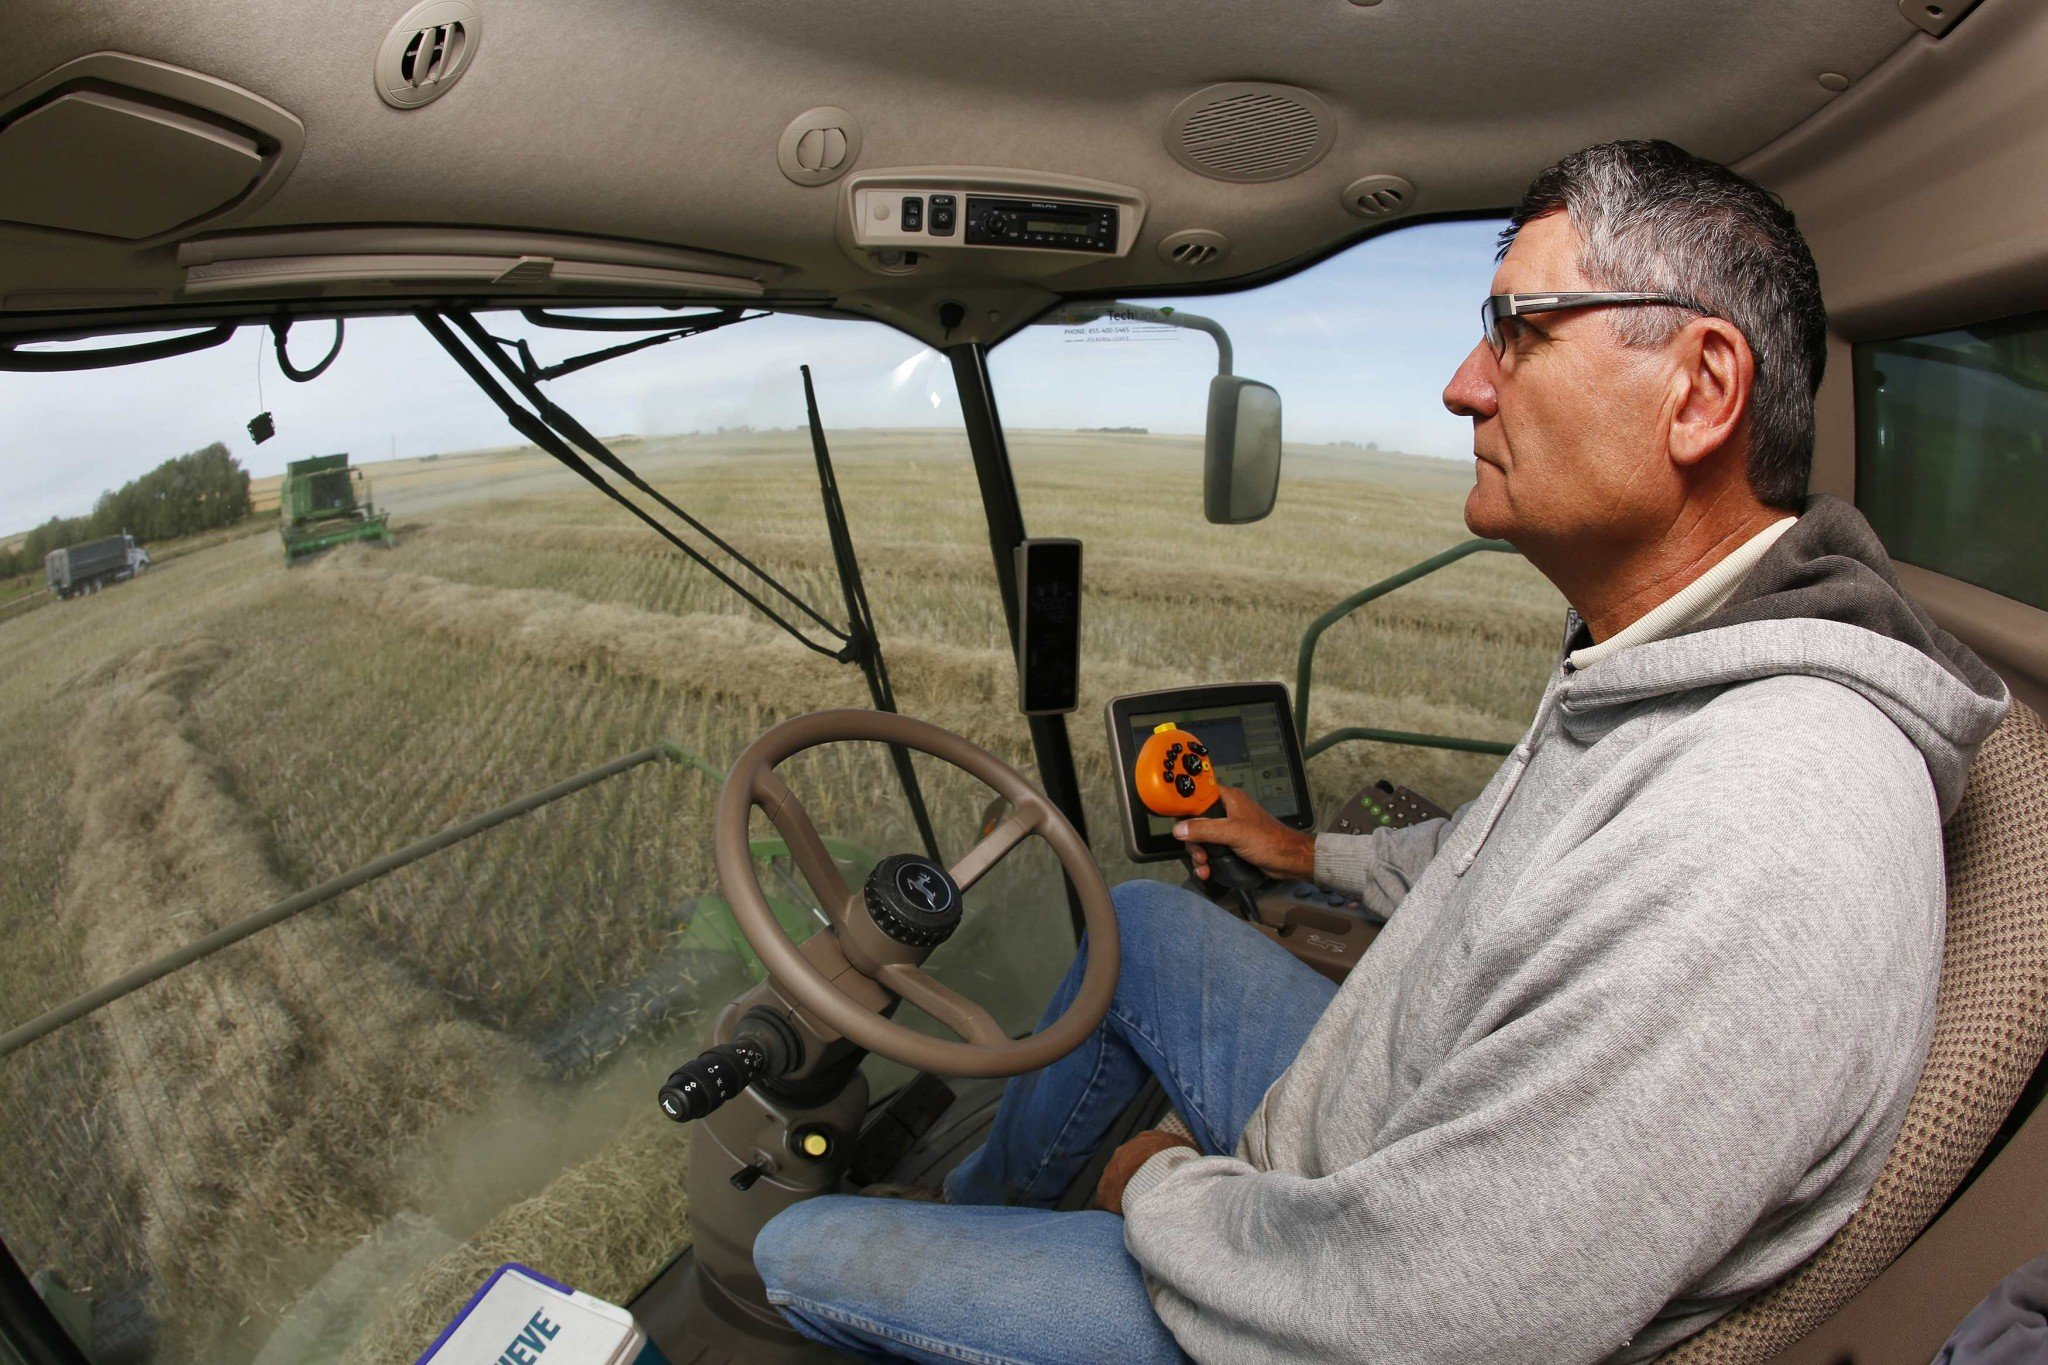 Farmer Barry Lang harvests canola with his crew on his farm near Beiseker, Alberta, in this file photo taken September 27, 2013. Working for yourself has plenty of benefits, but requires some extra work come tax time. (Reuters)